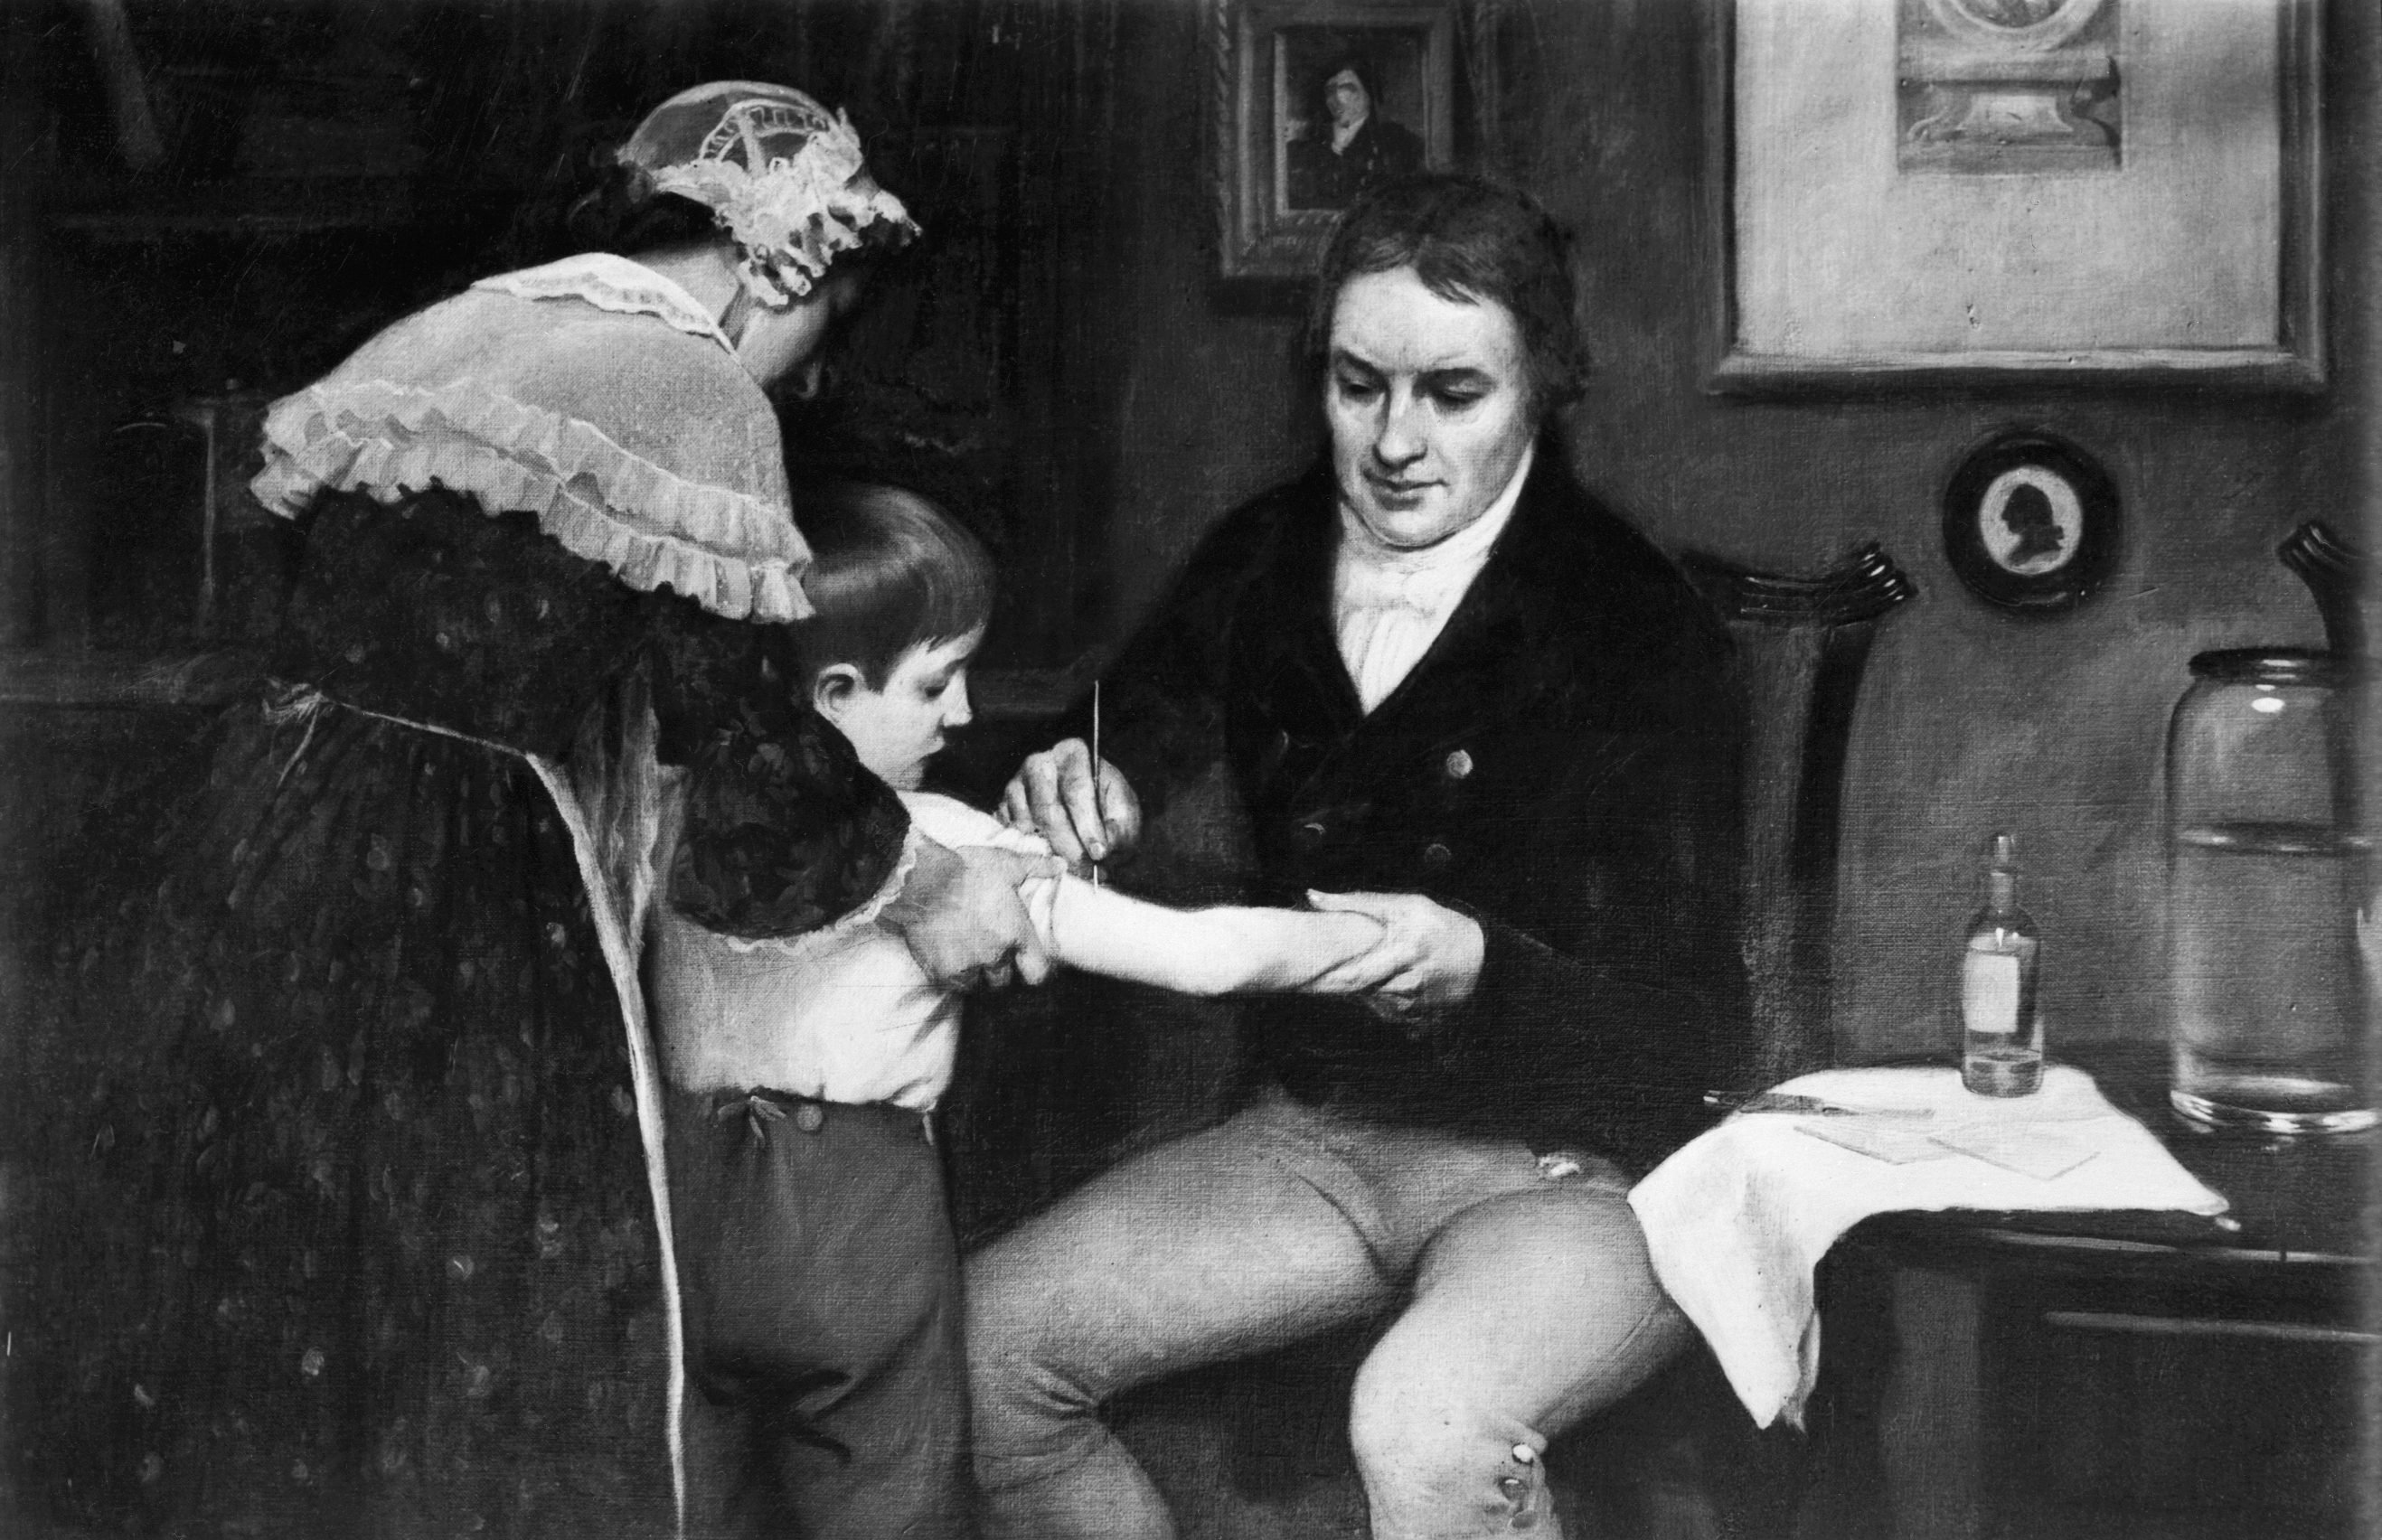 Dr.Edward Jenner Vaccinating Young Boy